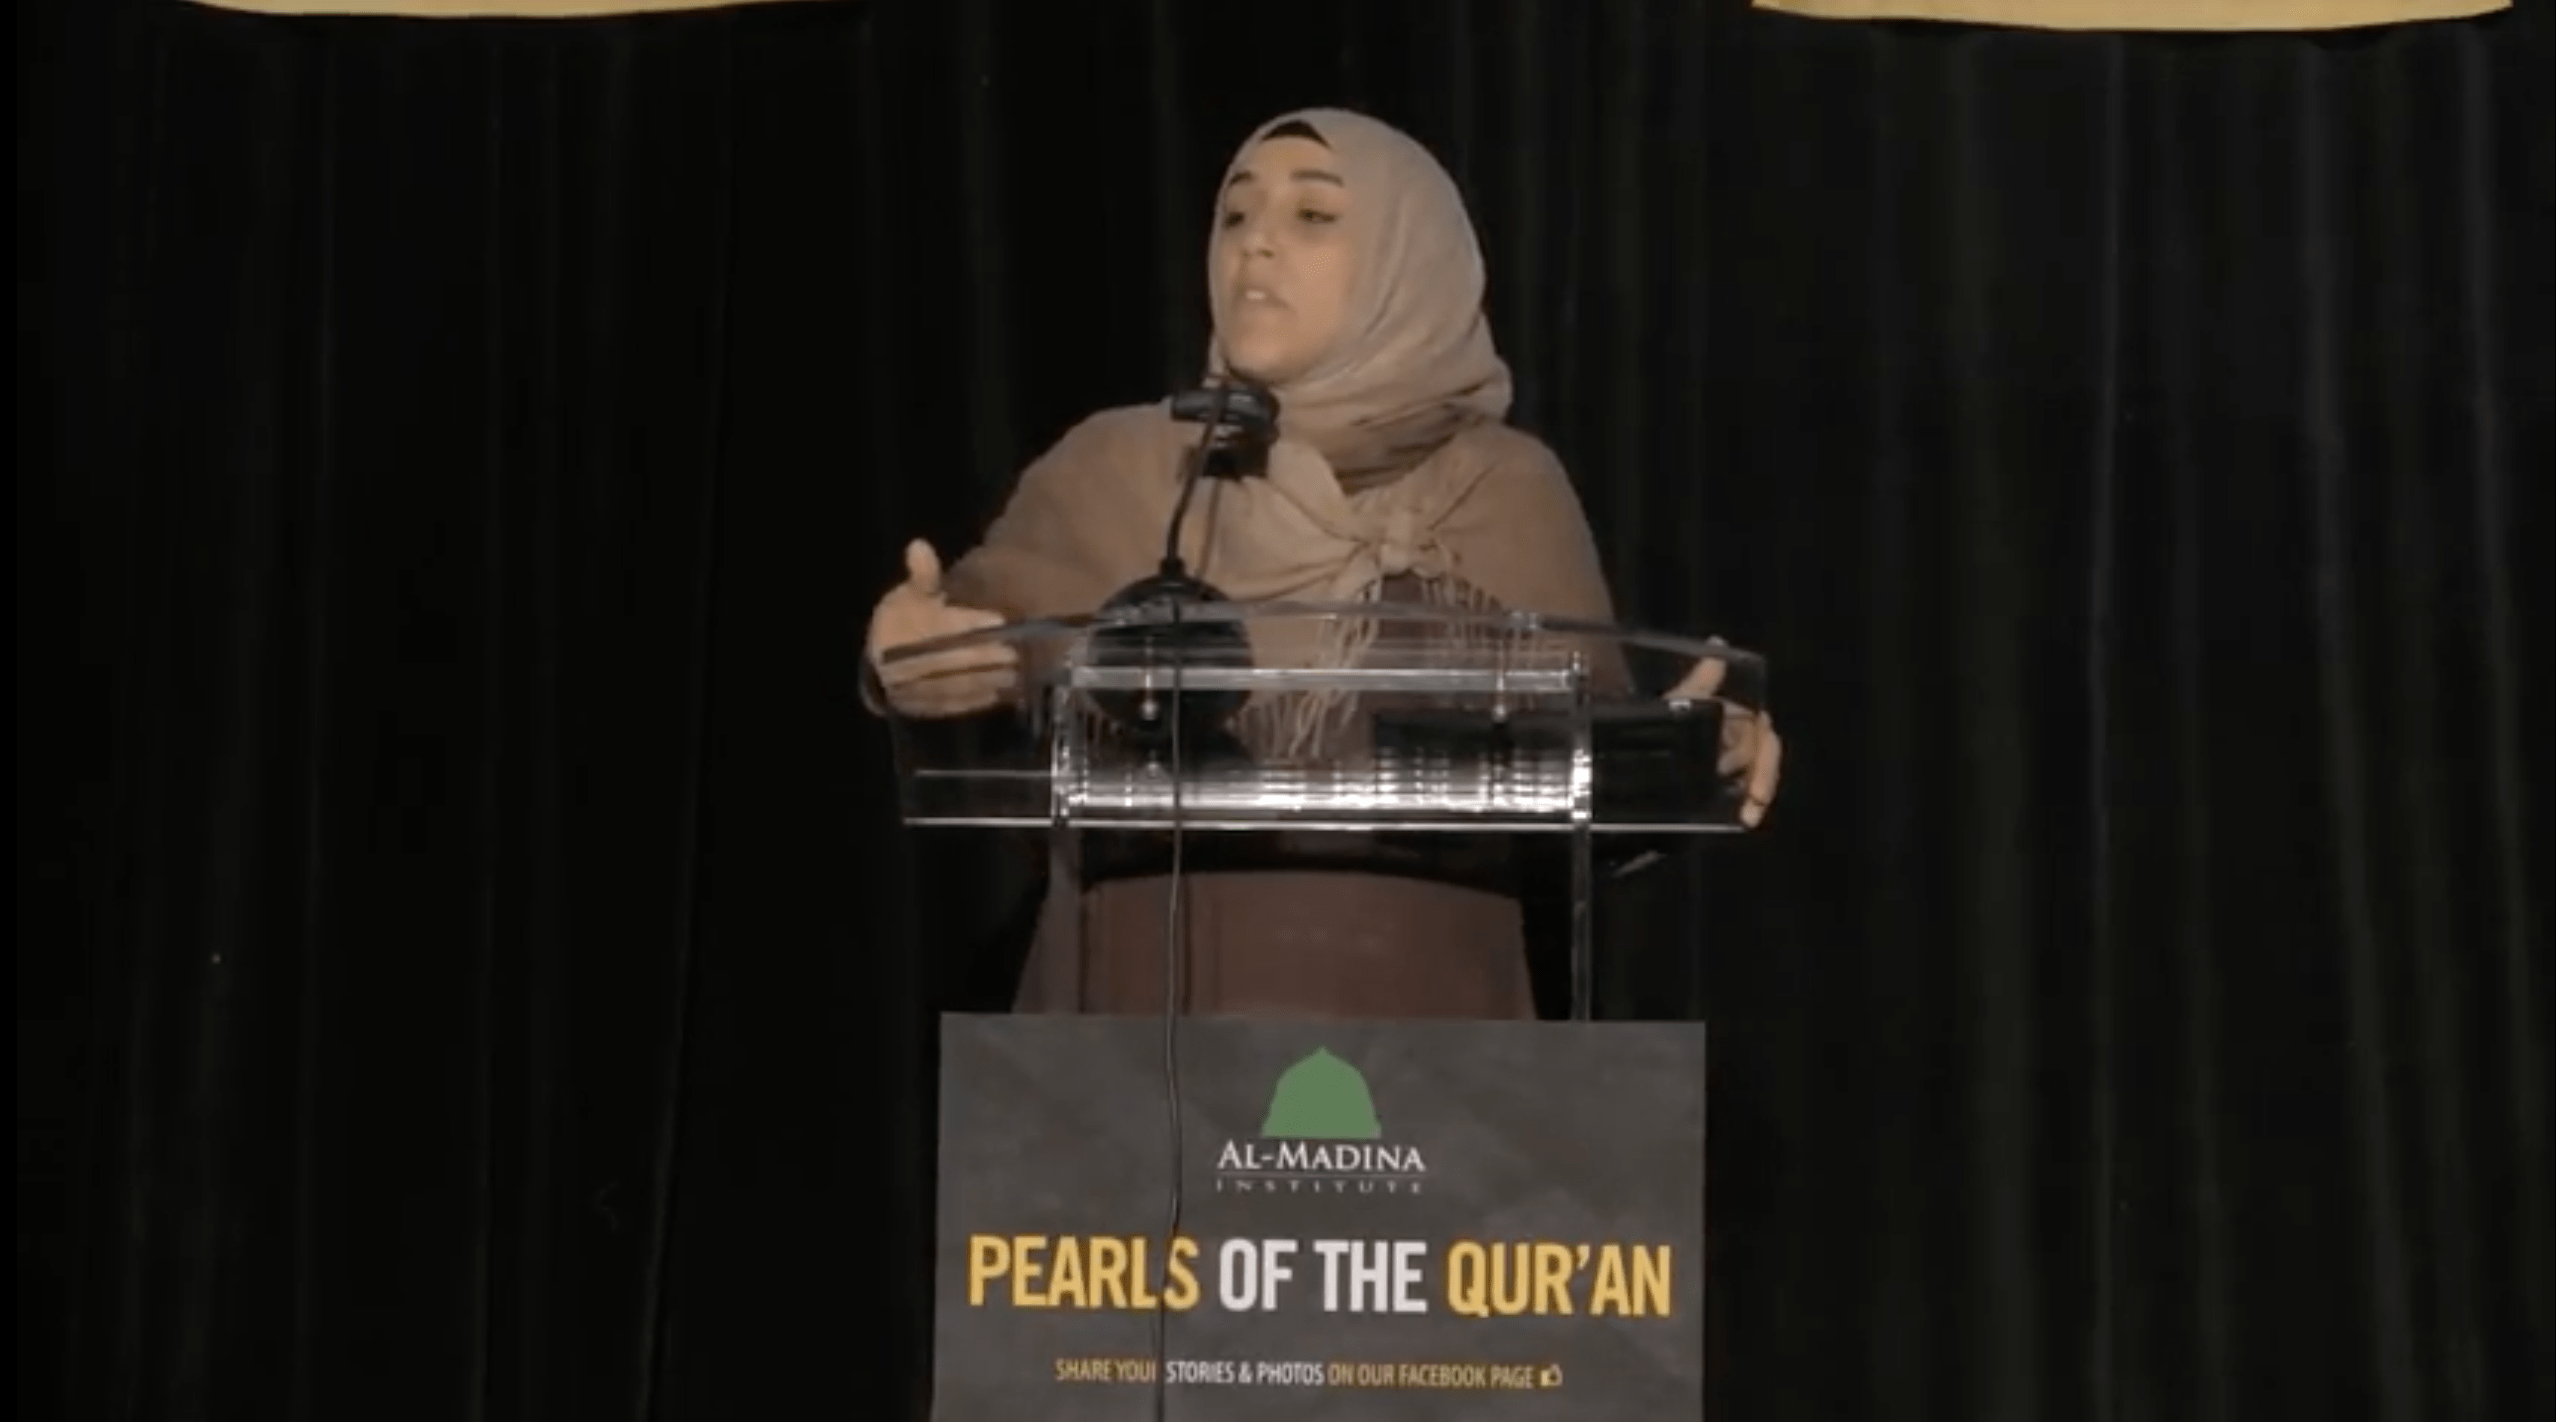 Yasmin Mogahed – Dealing with Adversity: A Study Case of Ifk